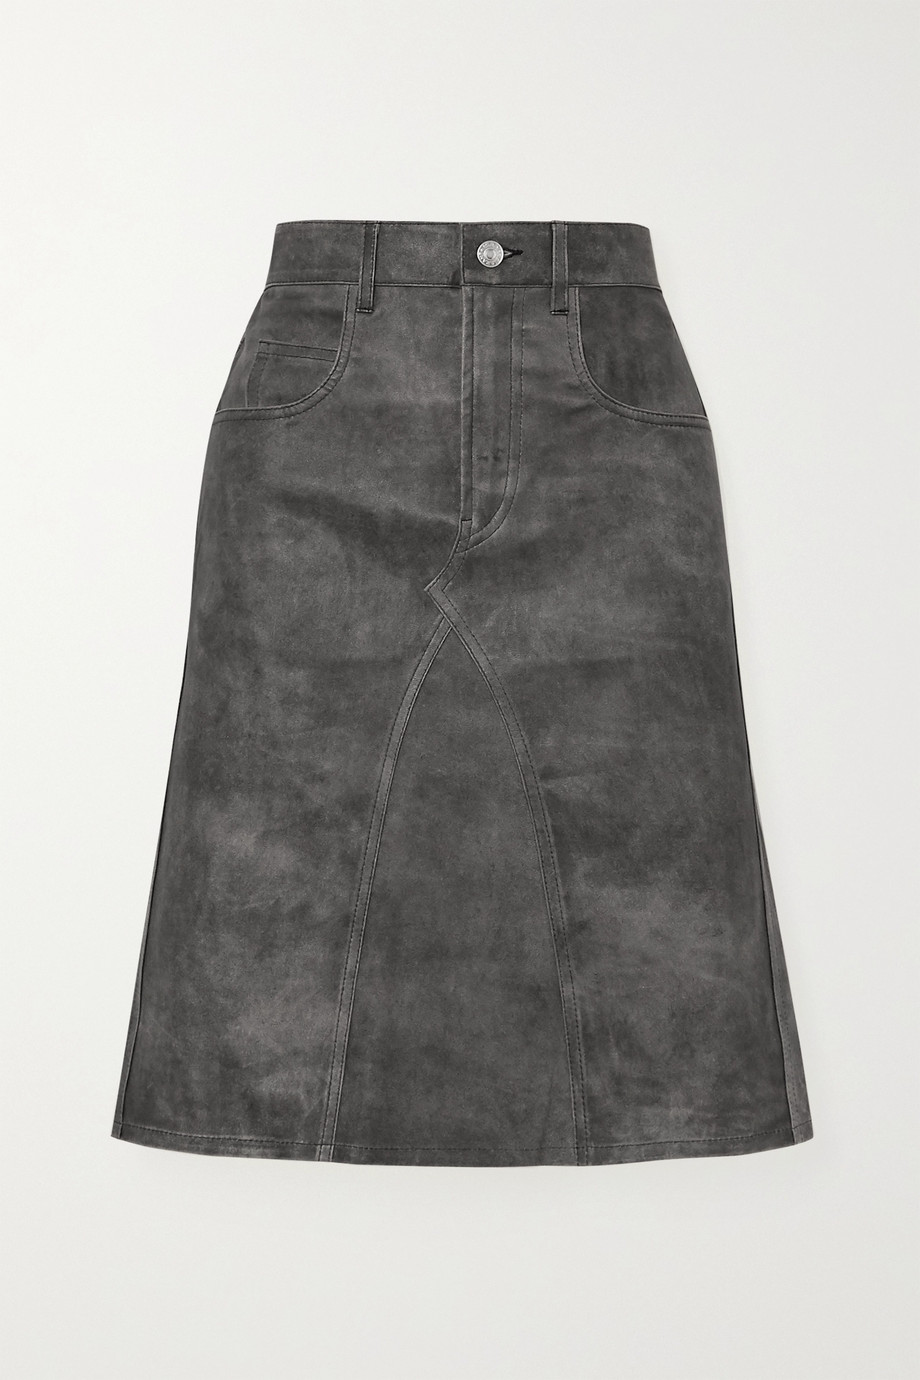 Isabel Marant Étoile Fiali leather skirt